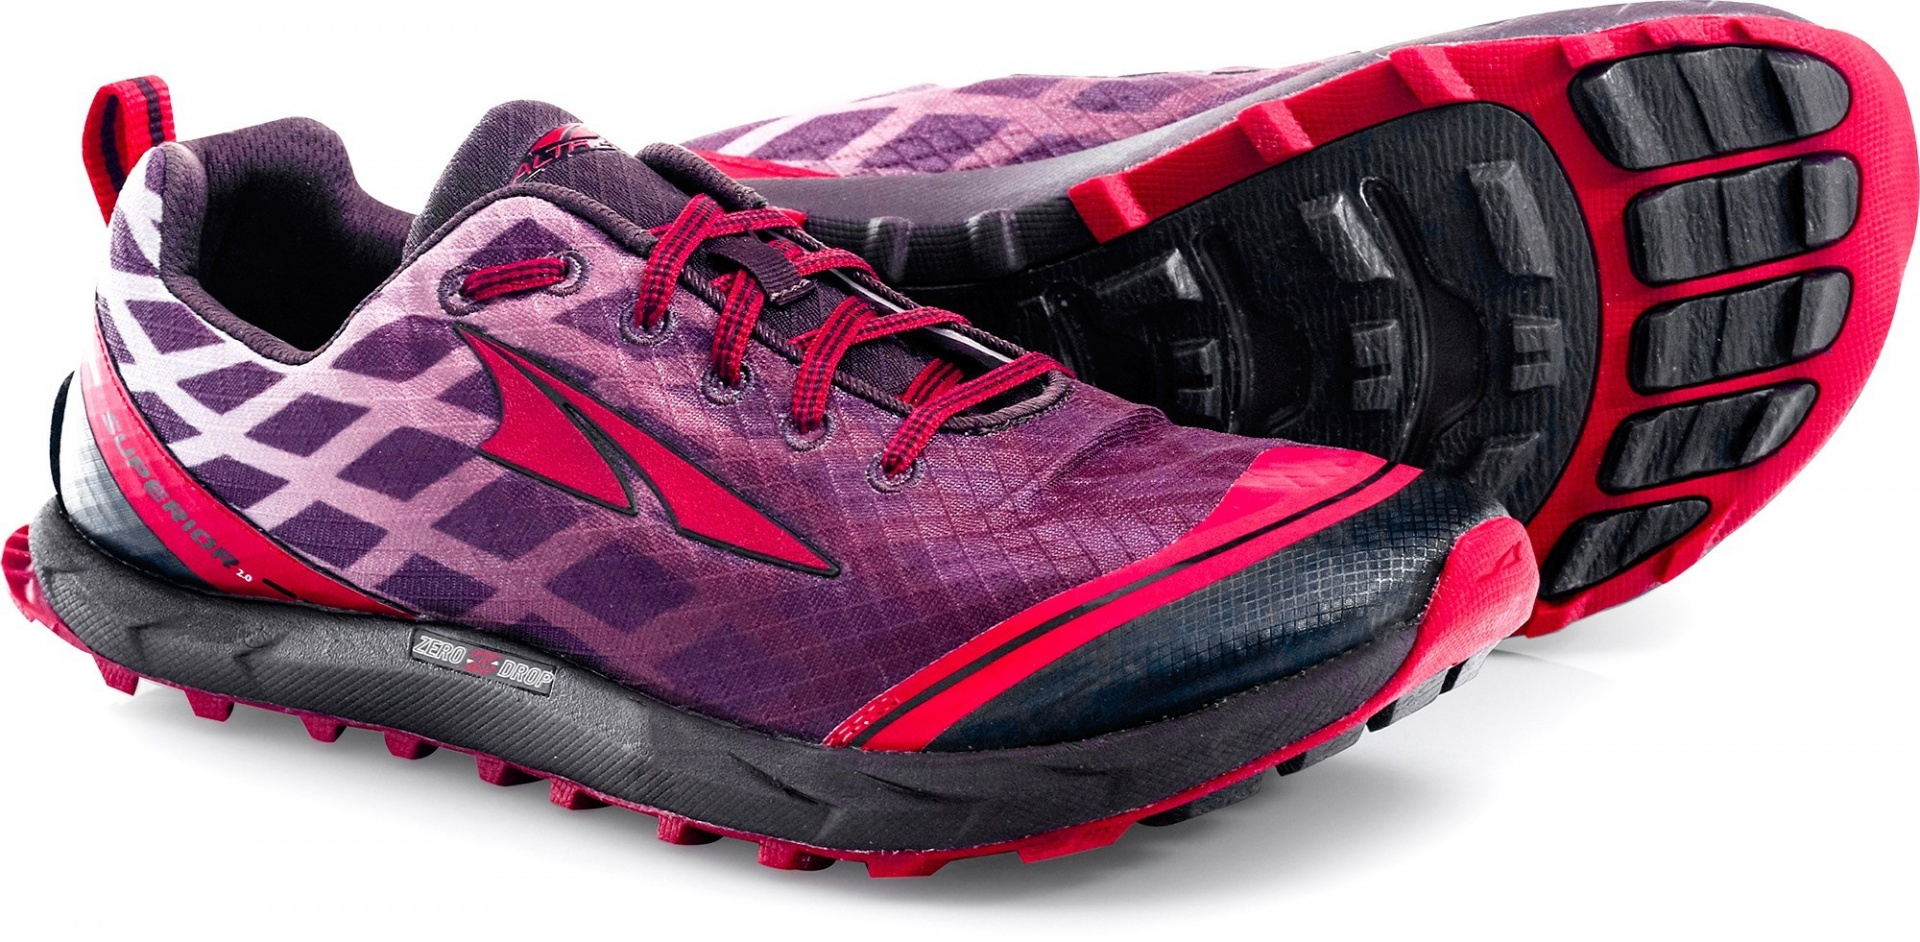 Altra Superior 2 0 Trail Running Shoes Men S By Altra Shop Online For Shoes In New Zealand